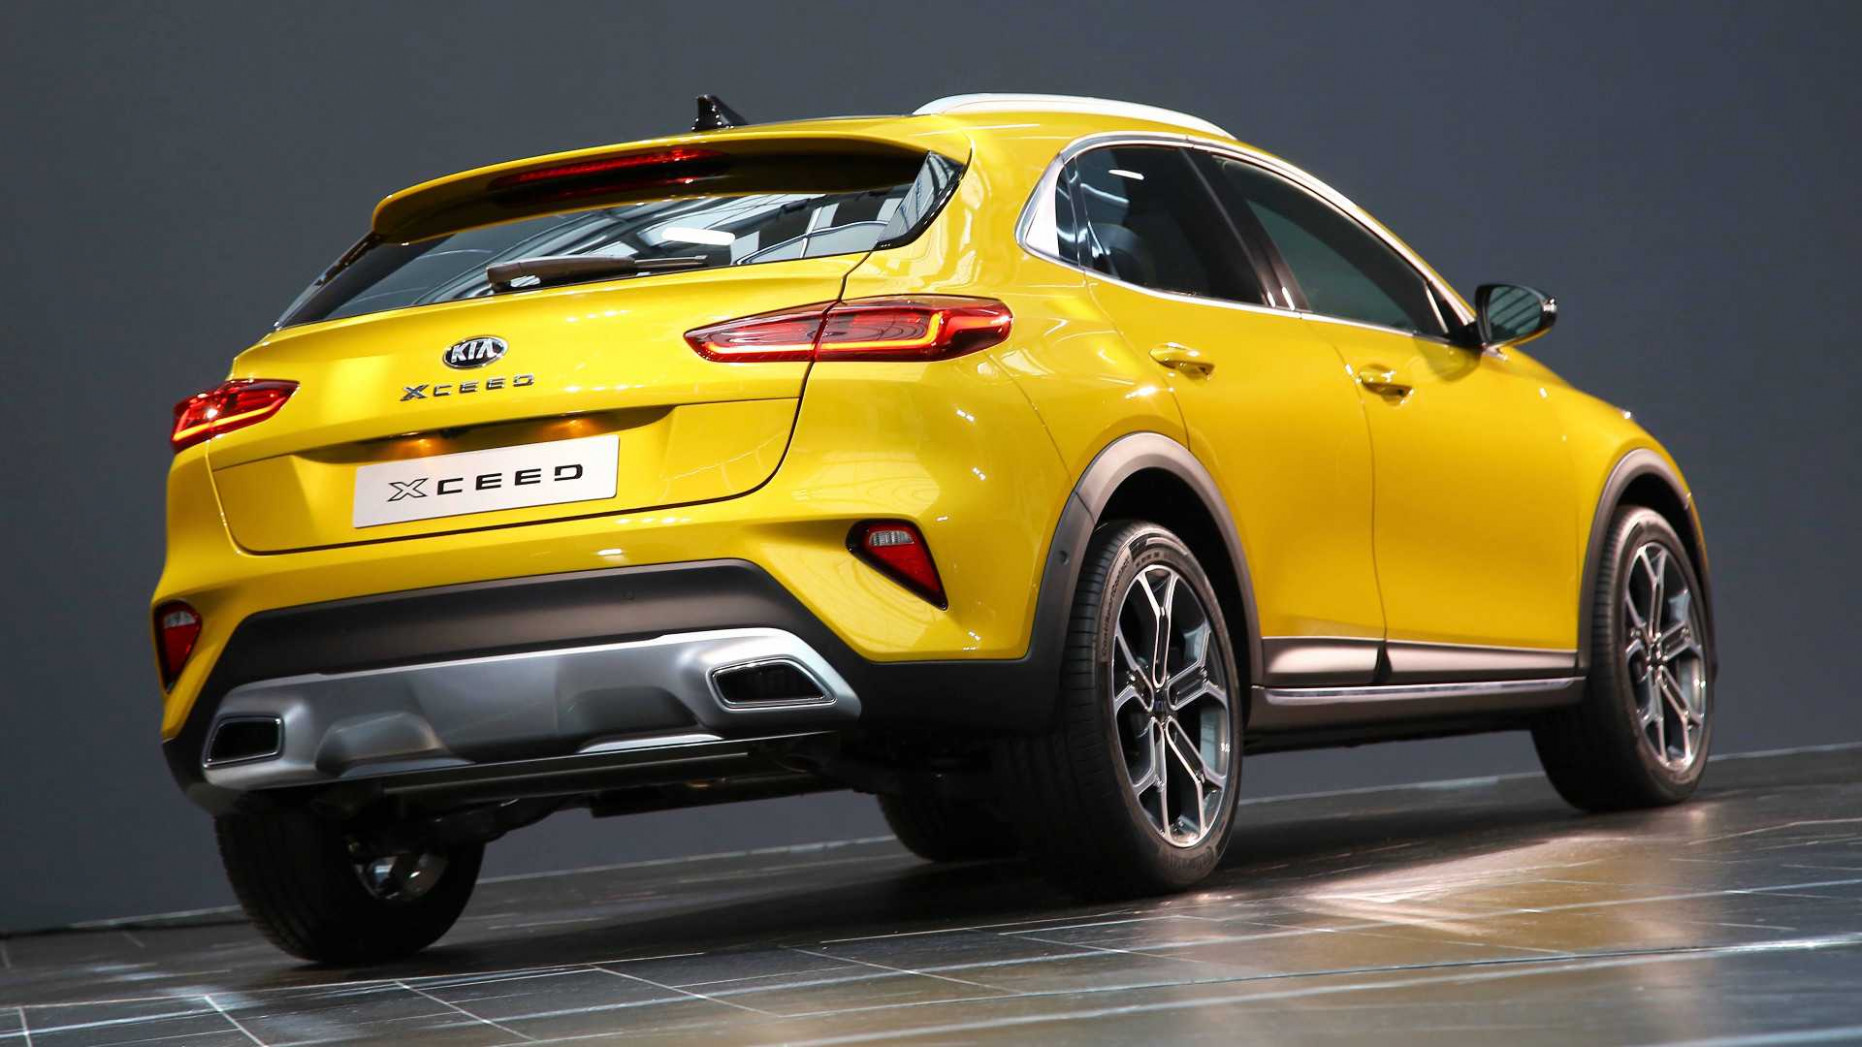 New Kia XCeed compact SUV starts from under £10,10